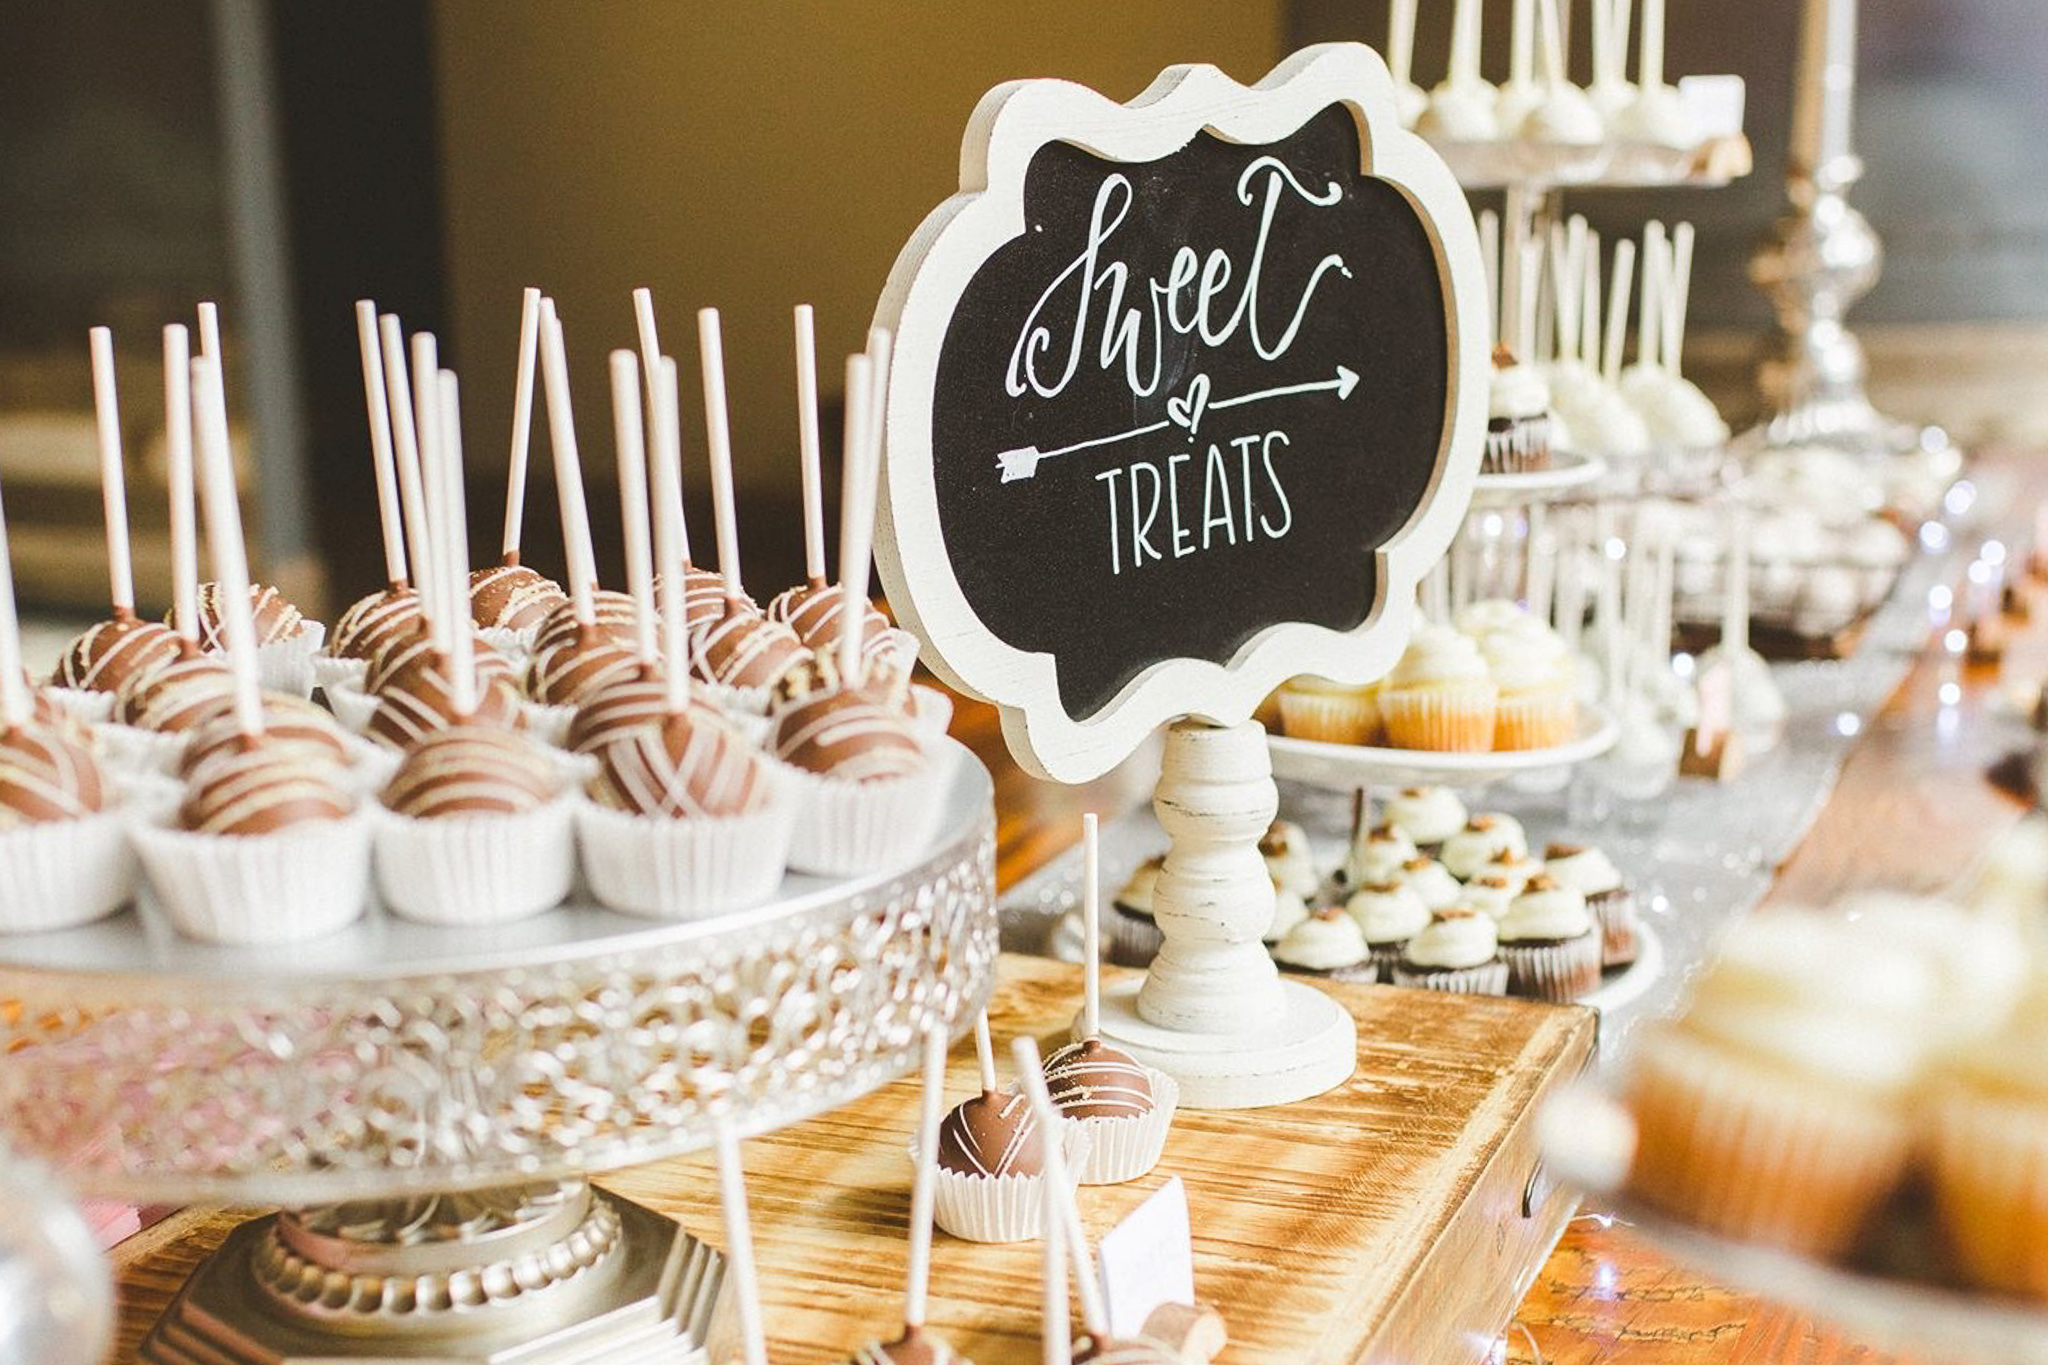 Dessert Bar - One of the most popular options for weddings! Mix and match any combination of your favorite desserts. Many brides will order the dessert bar to accent their wedding cake.